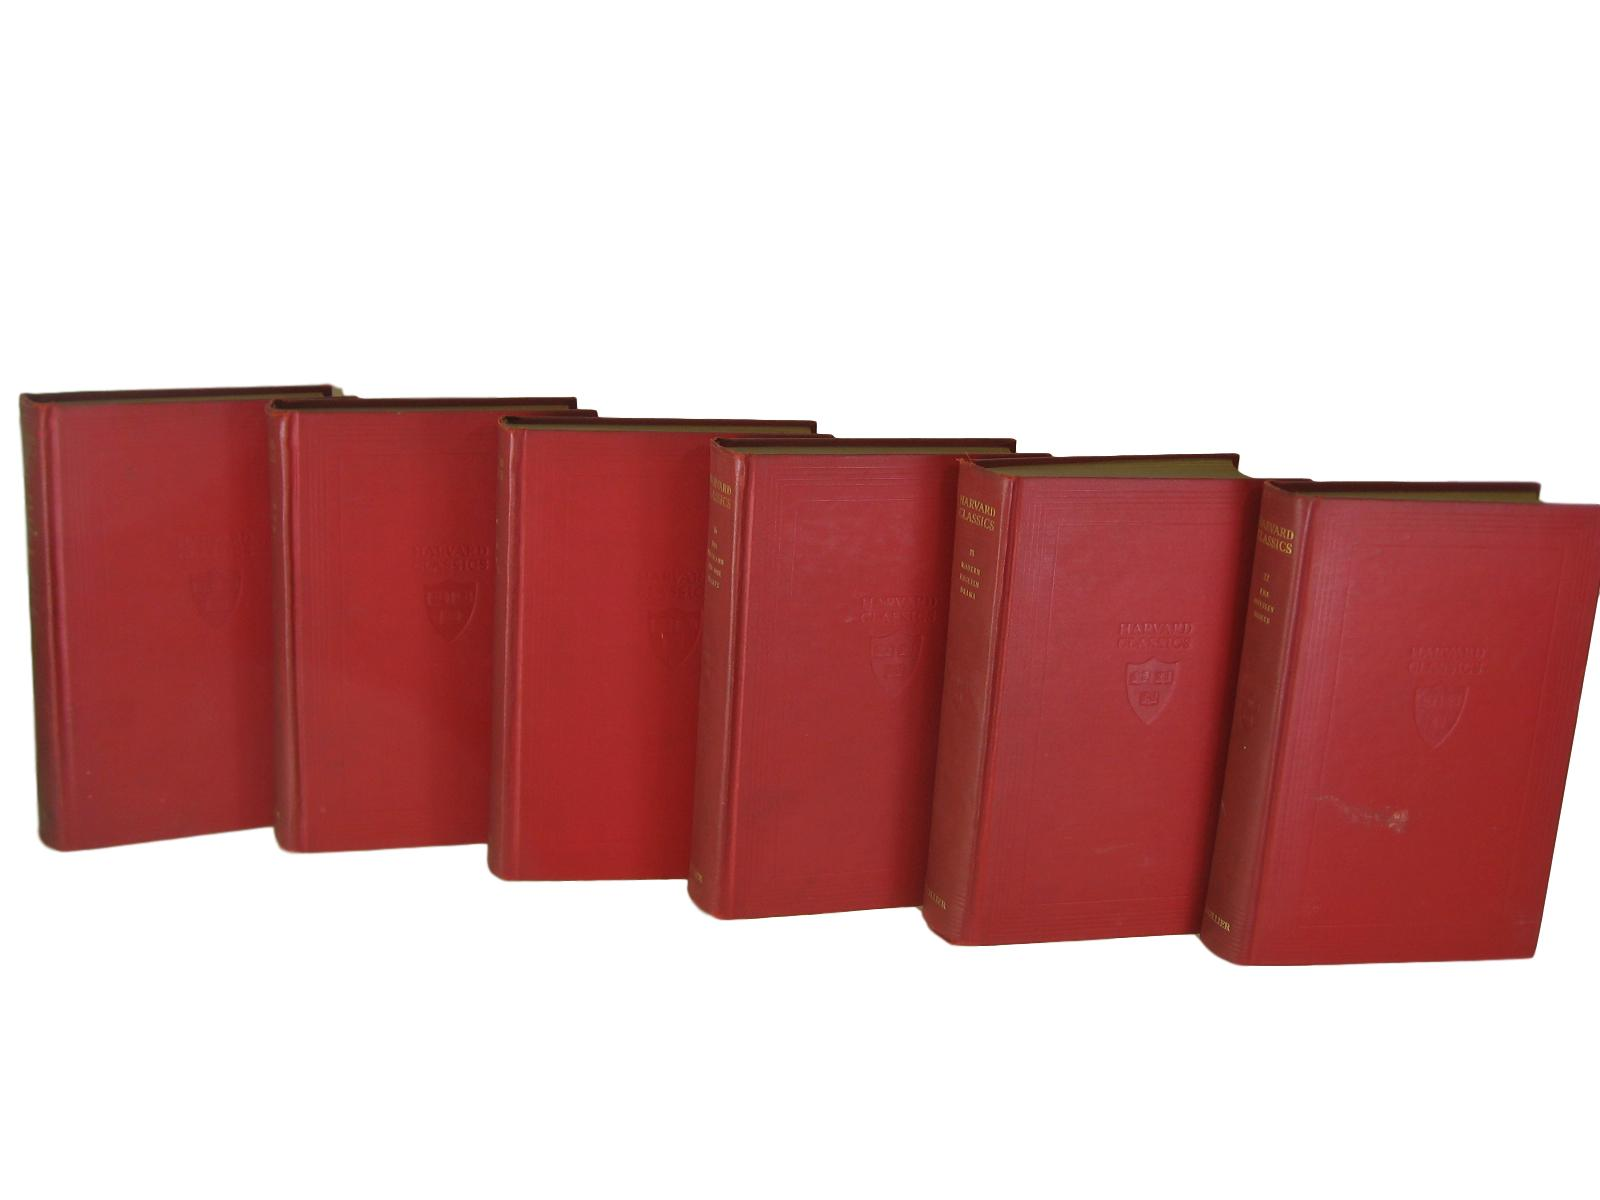 Red Harvard Classics from 1909, S/6 - Decades of Vintage